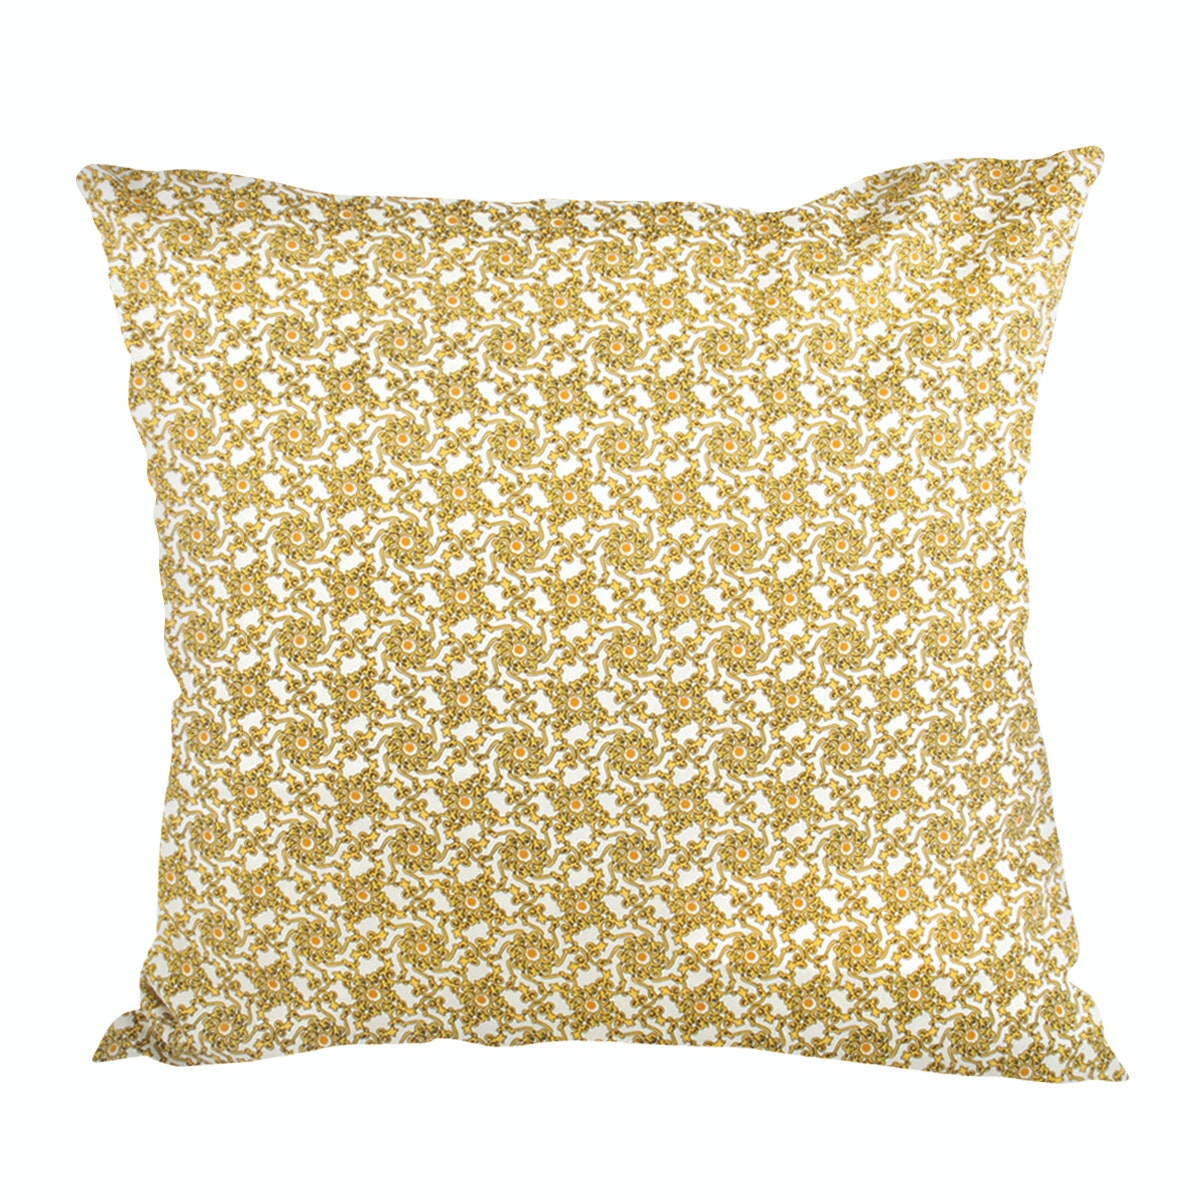 Glerry Home Decor Yellow Groove Cushion 45x45cm